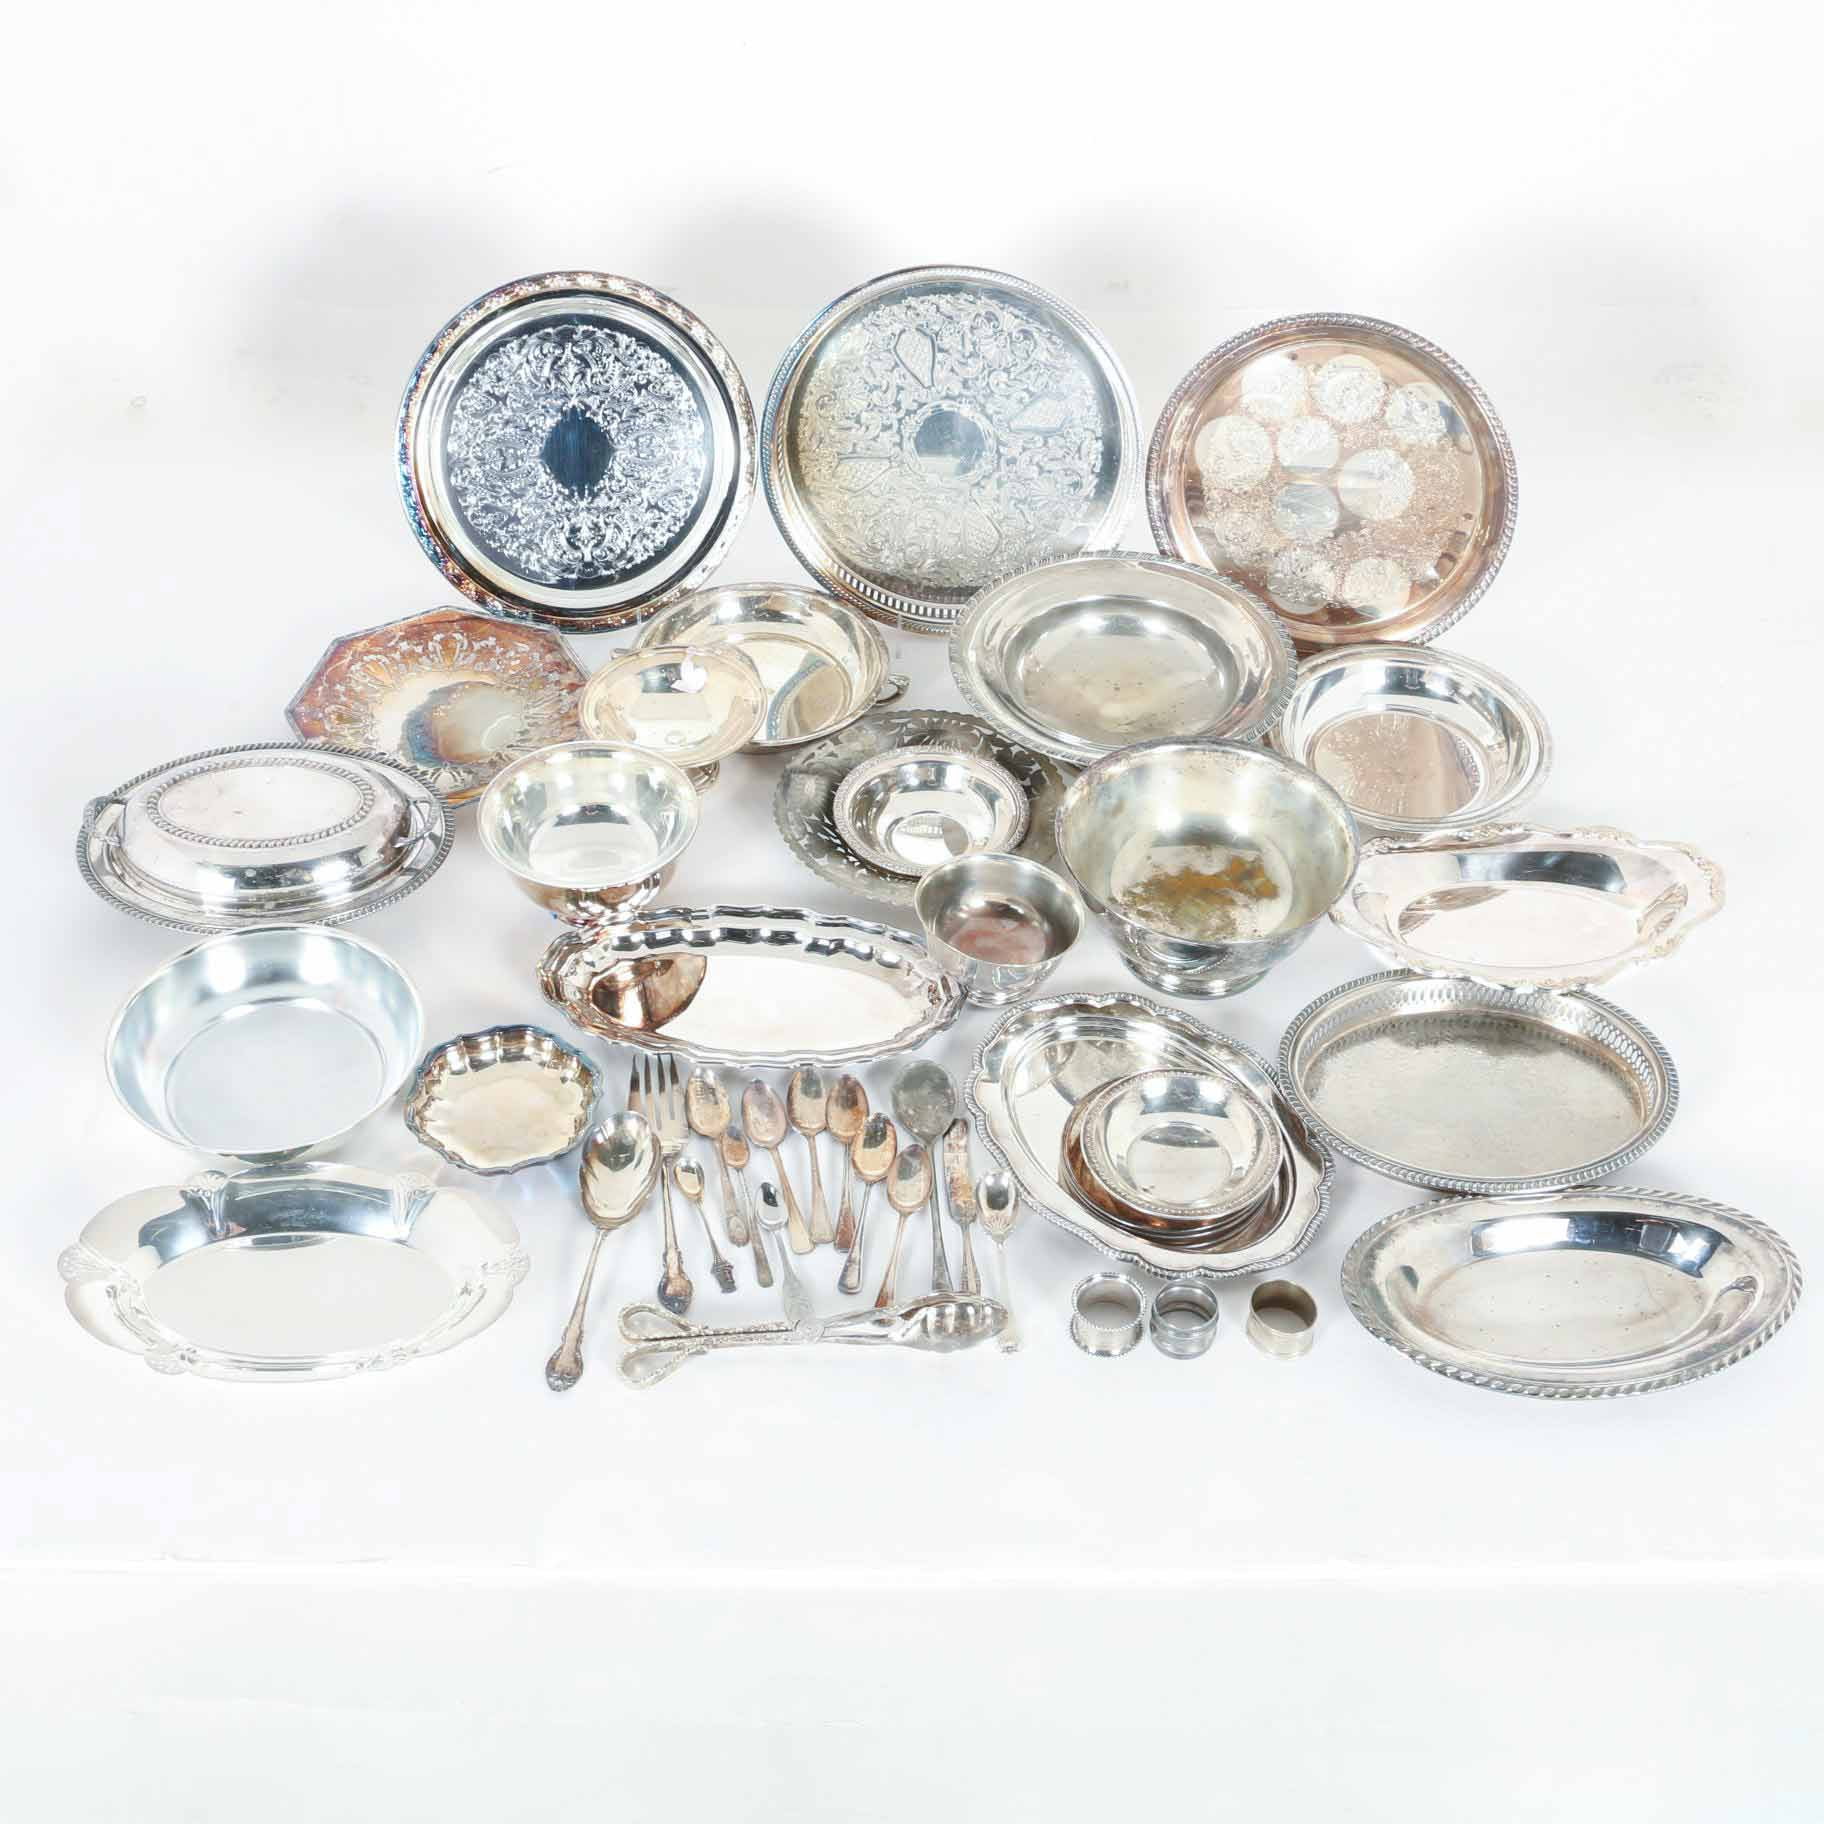 Silver Plate Trays, Bowls and Flatware Including Oneida and William Rogers